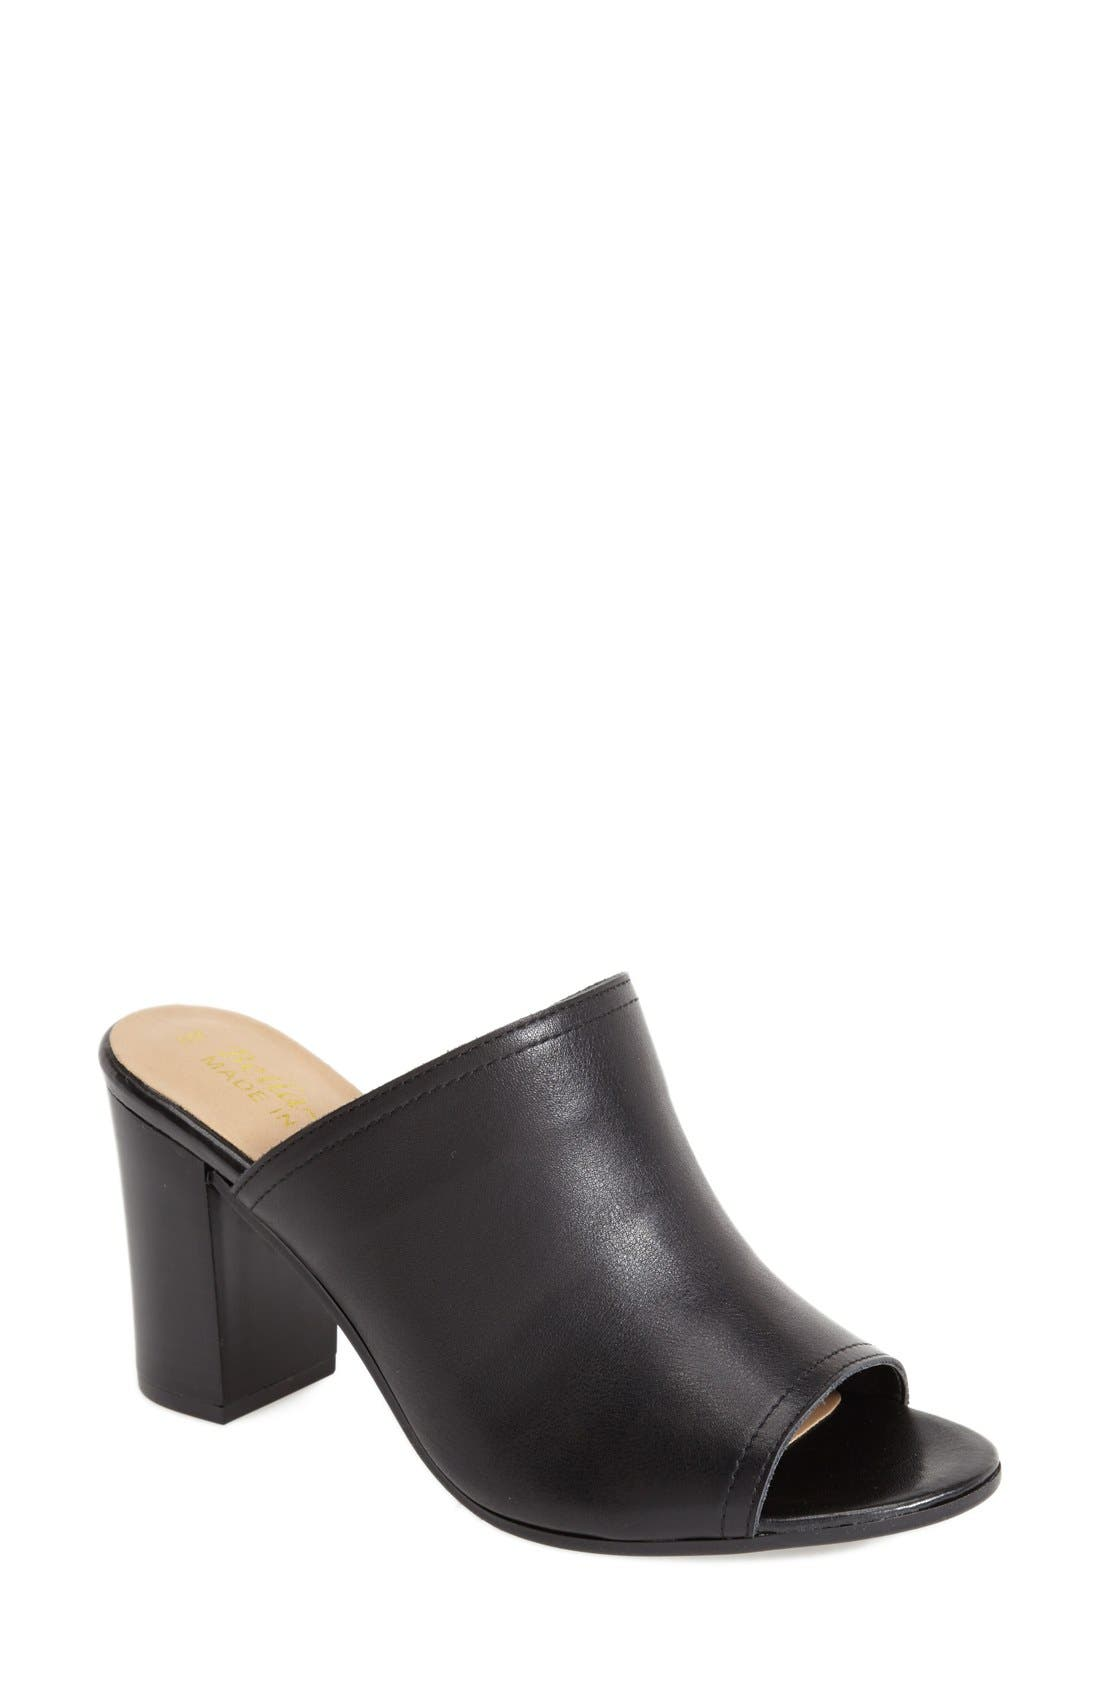 BELLA VITA, 'Arno' Leather Mule, Main thumbnail 1, color, 001